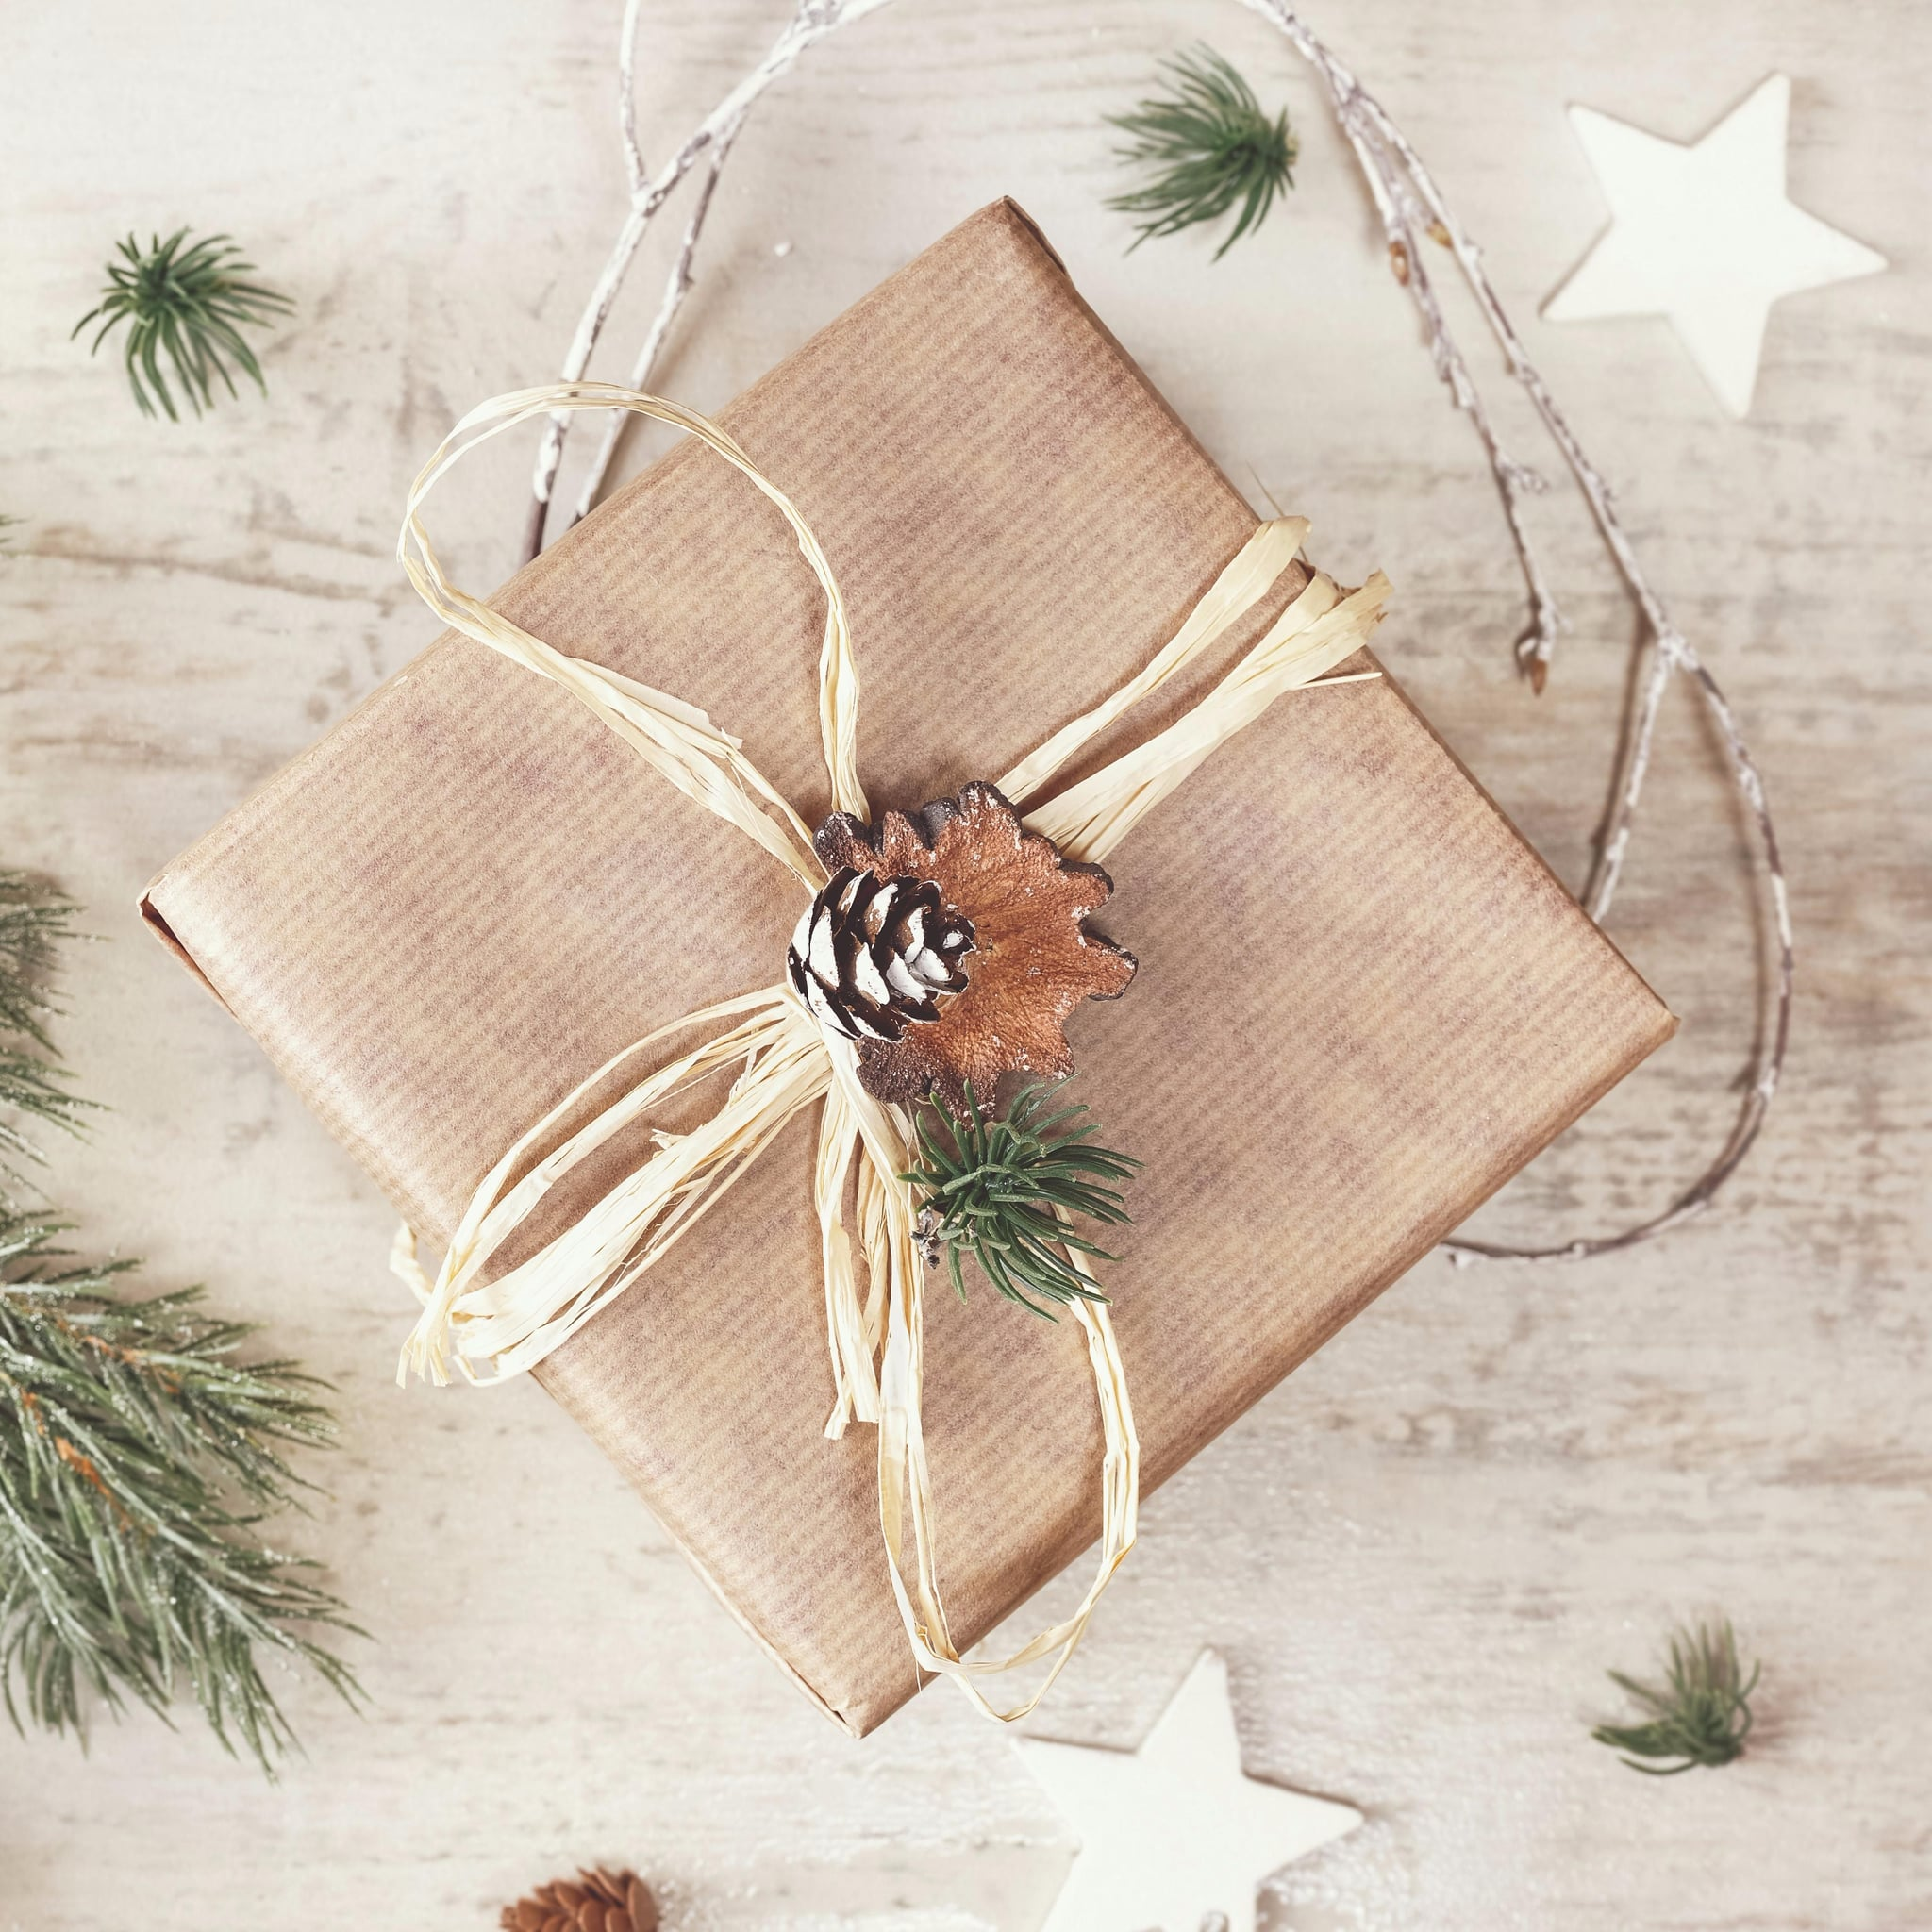 Christmas Gift Ideas For Hard to Buy For People | POPSUGAR Beauty ...